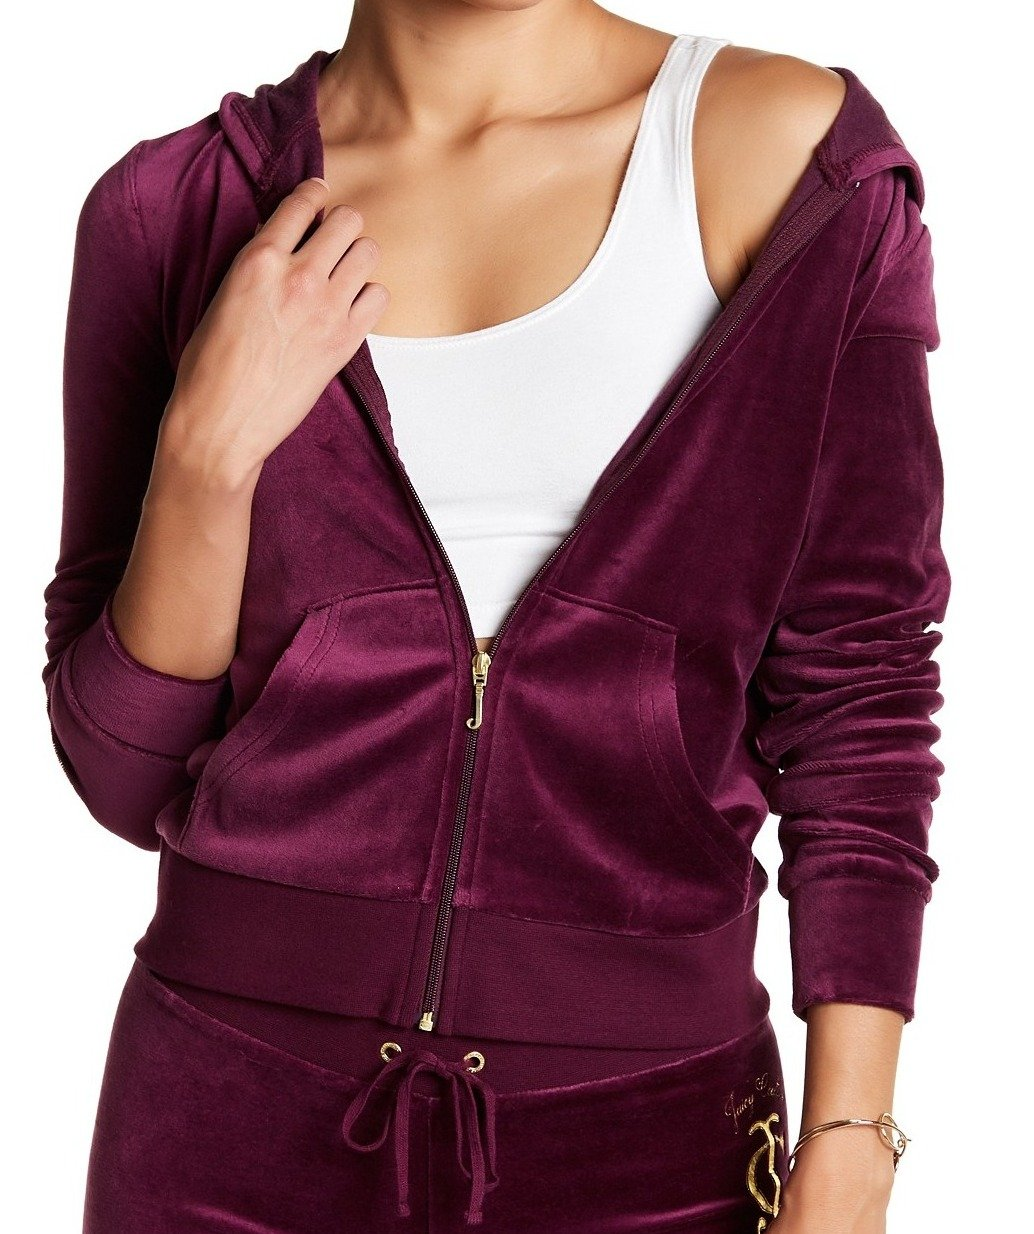 Juicy Couture Velour Gold Printed Hooded Sweater Jacket